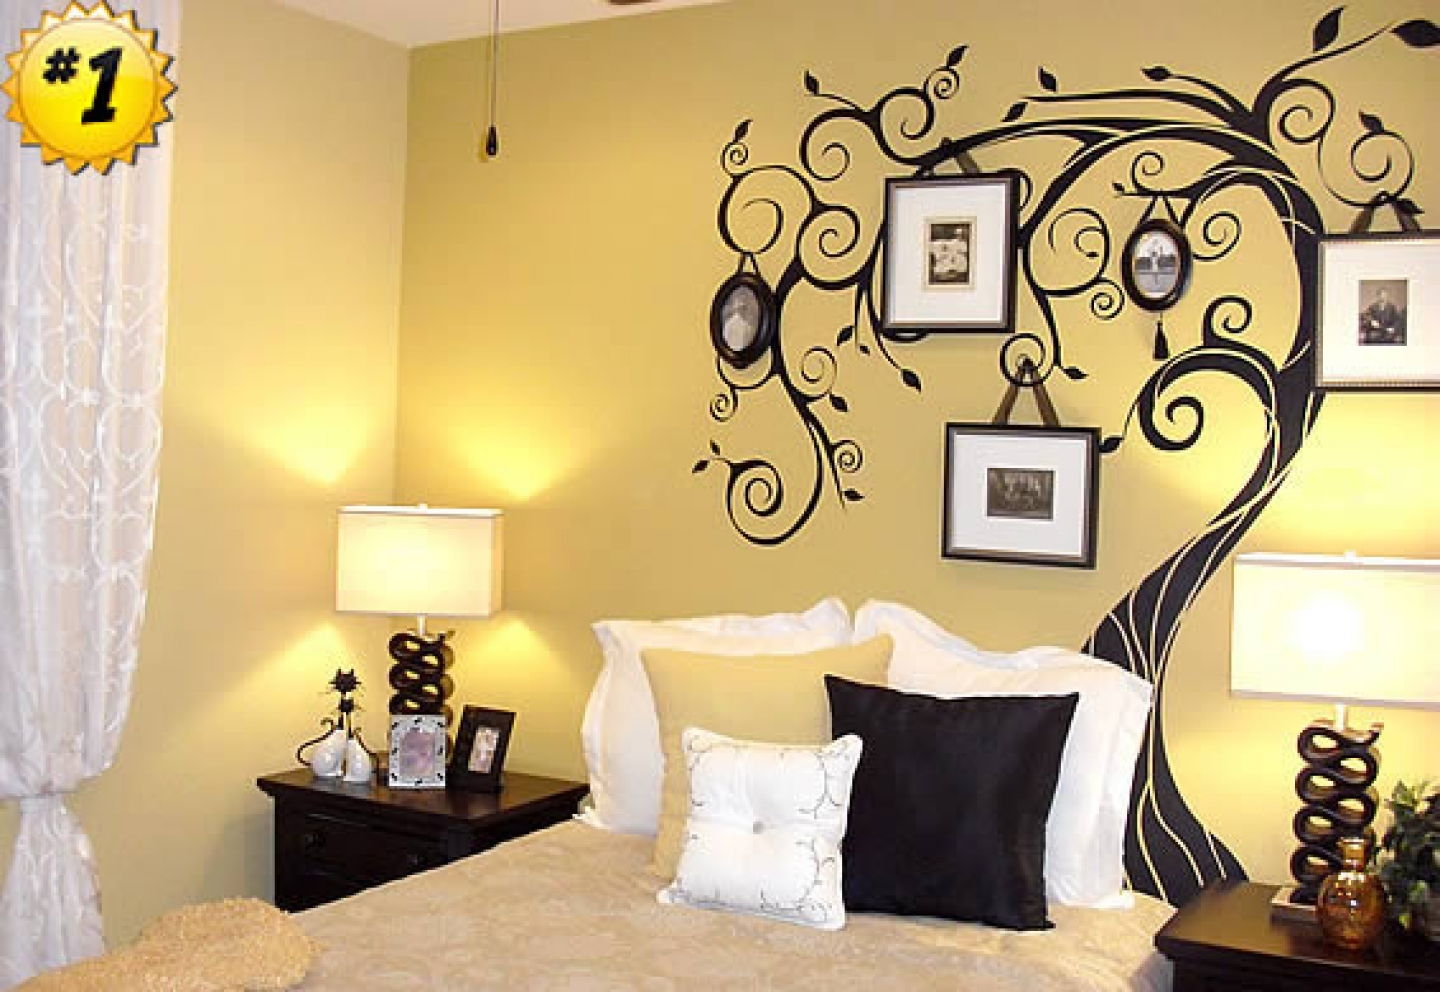 Bedroom decor styles